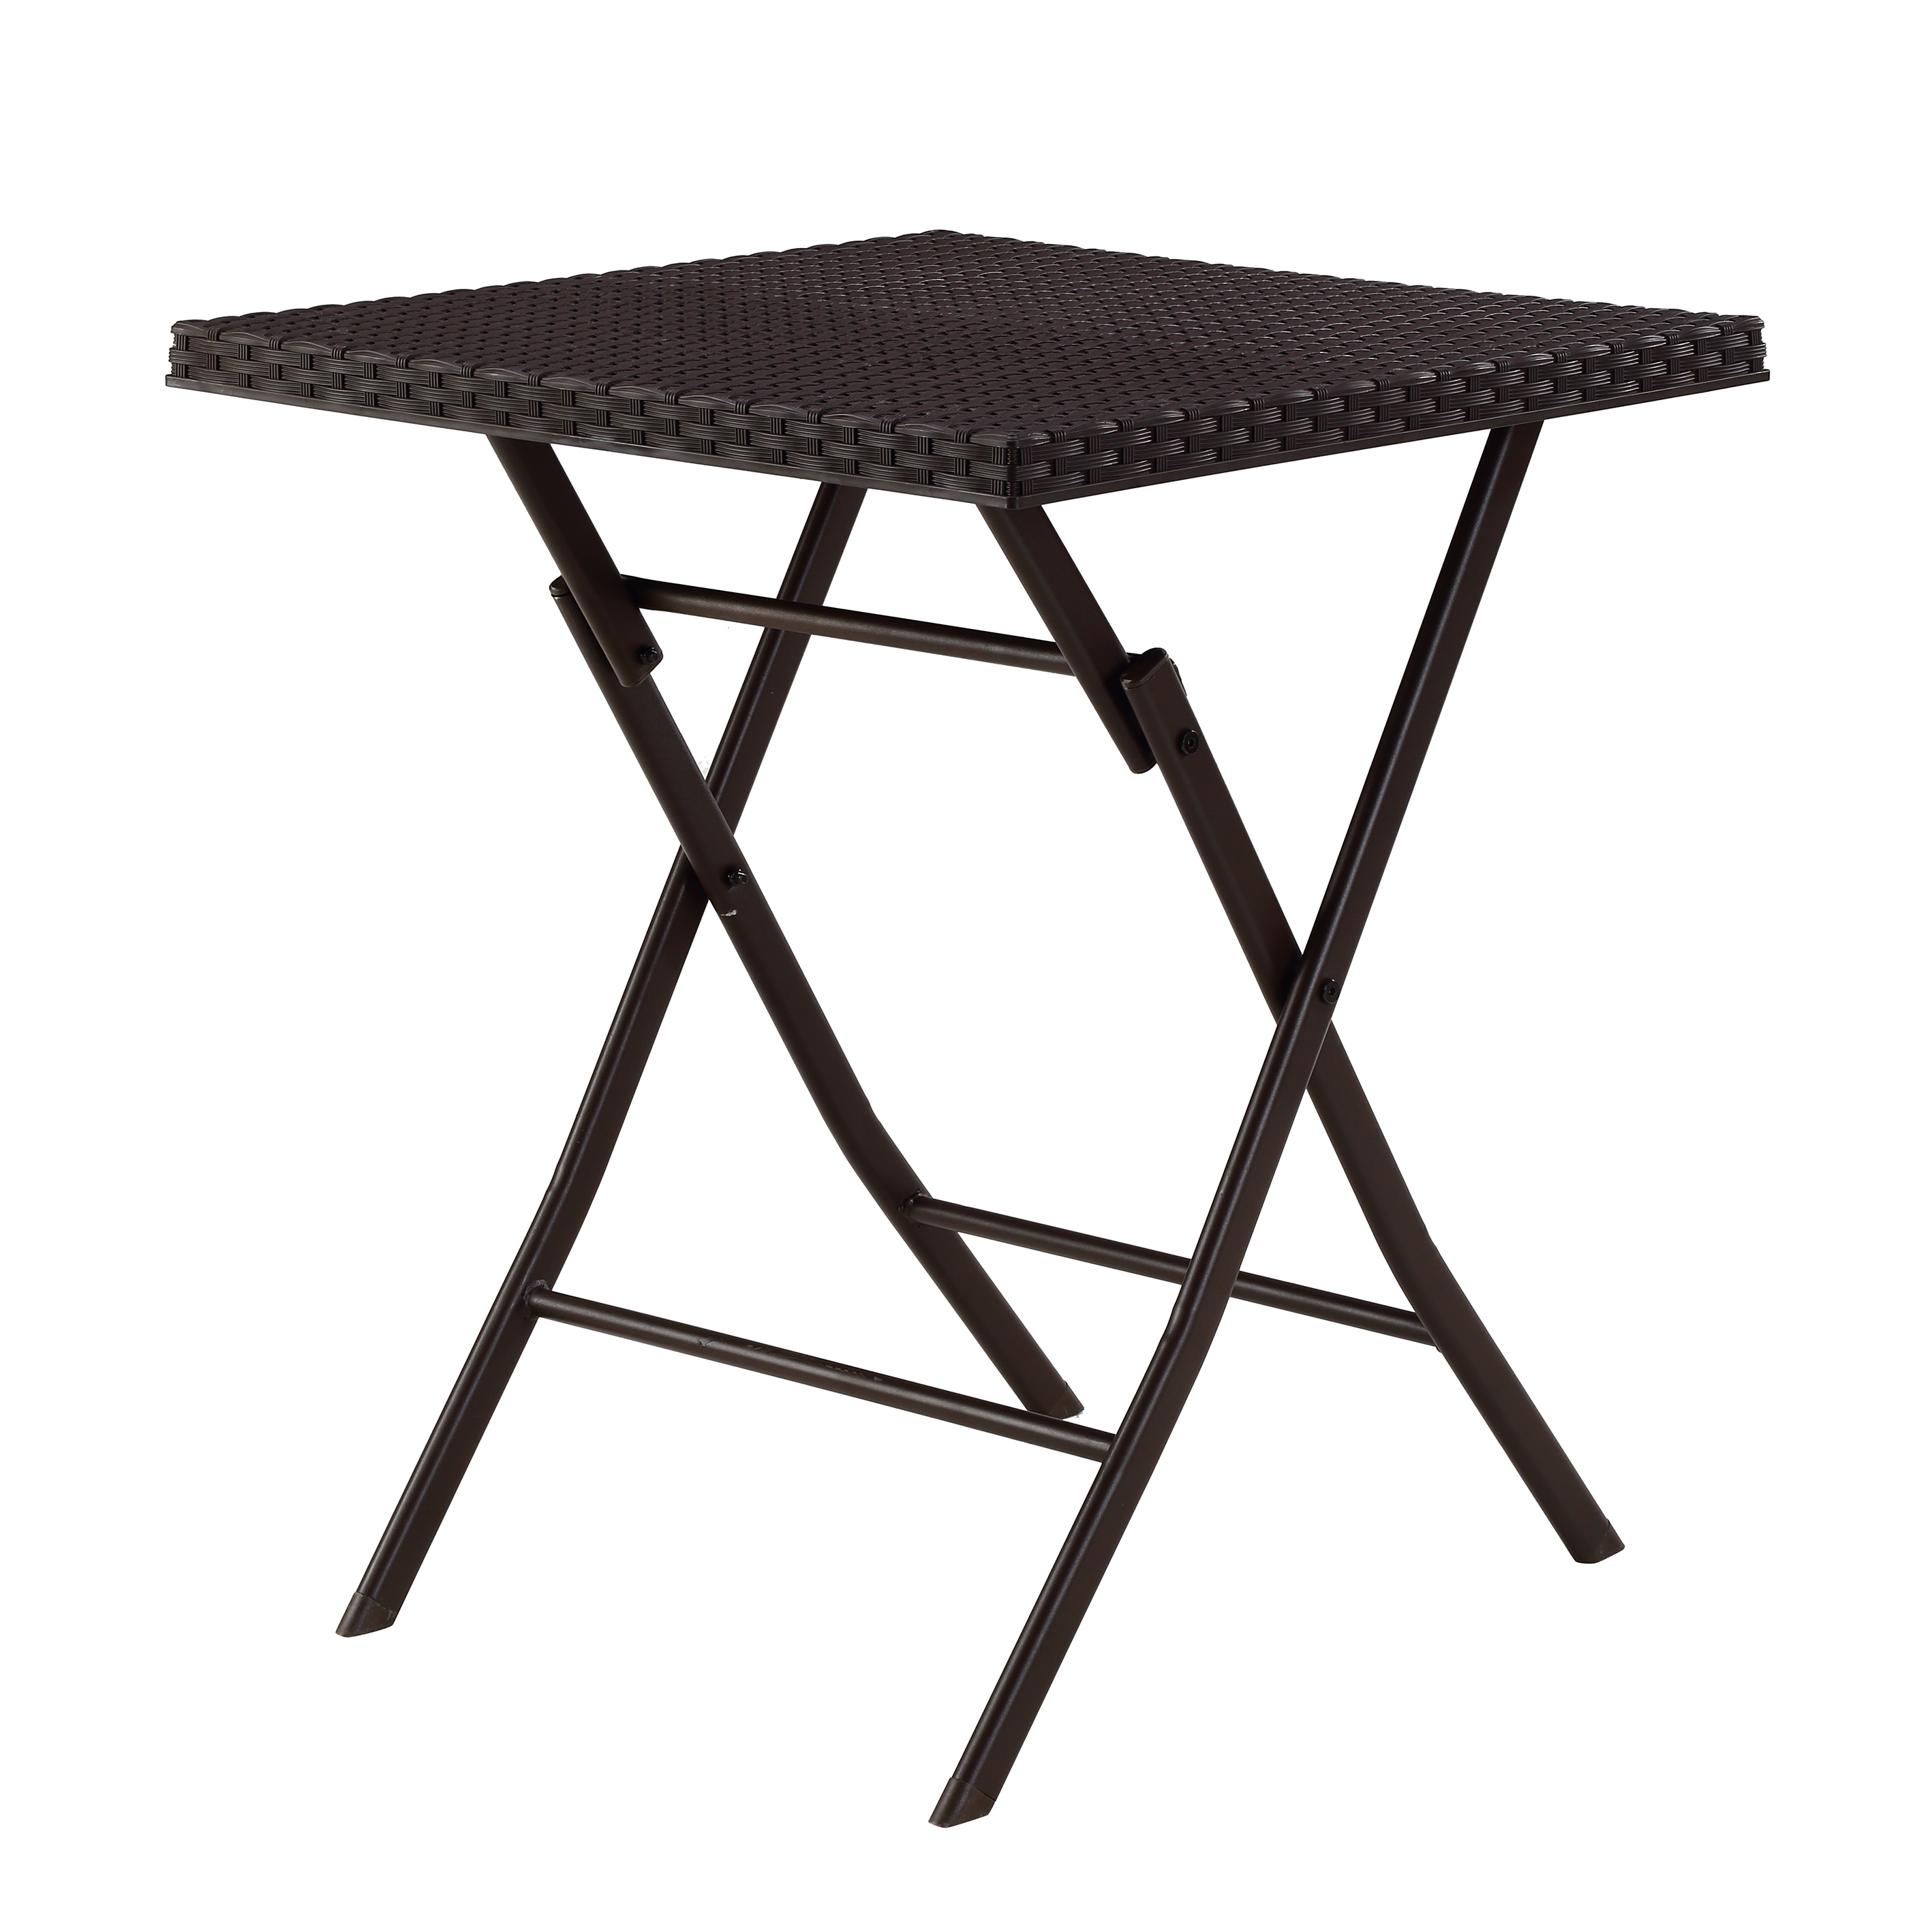 Plastic Folding Table For Garden